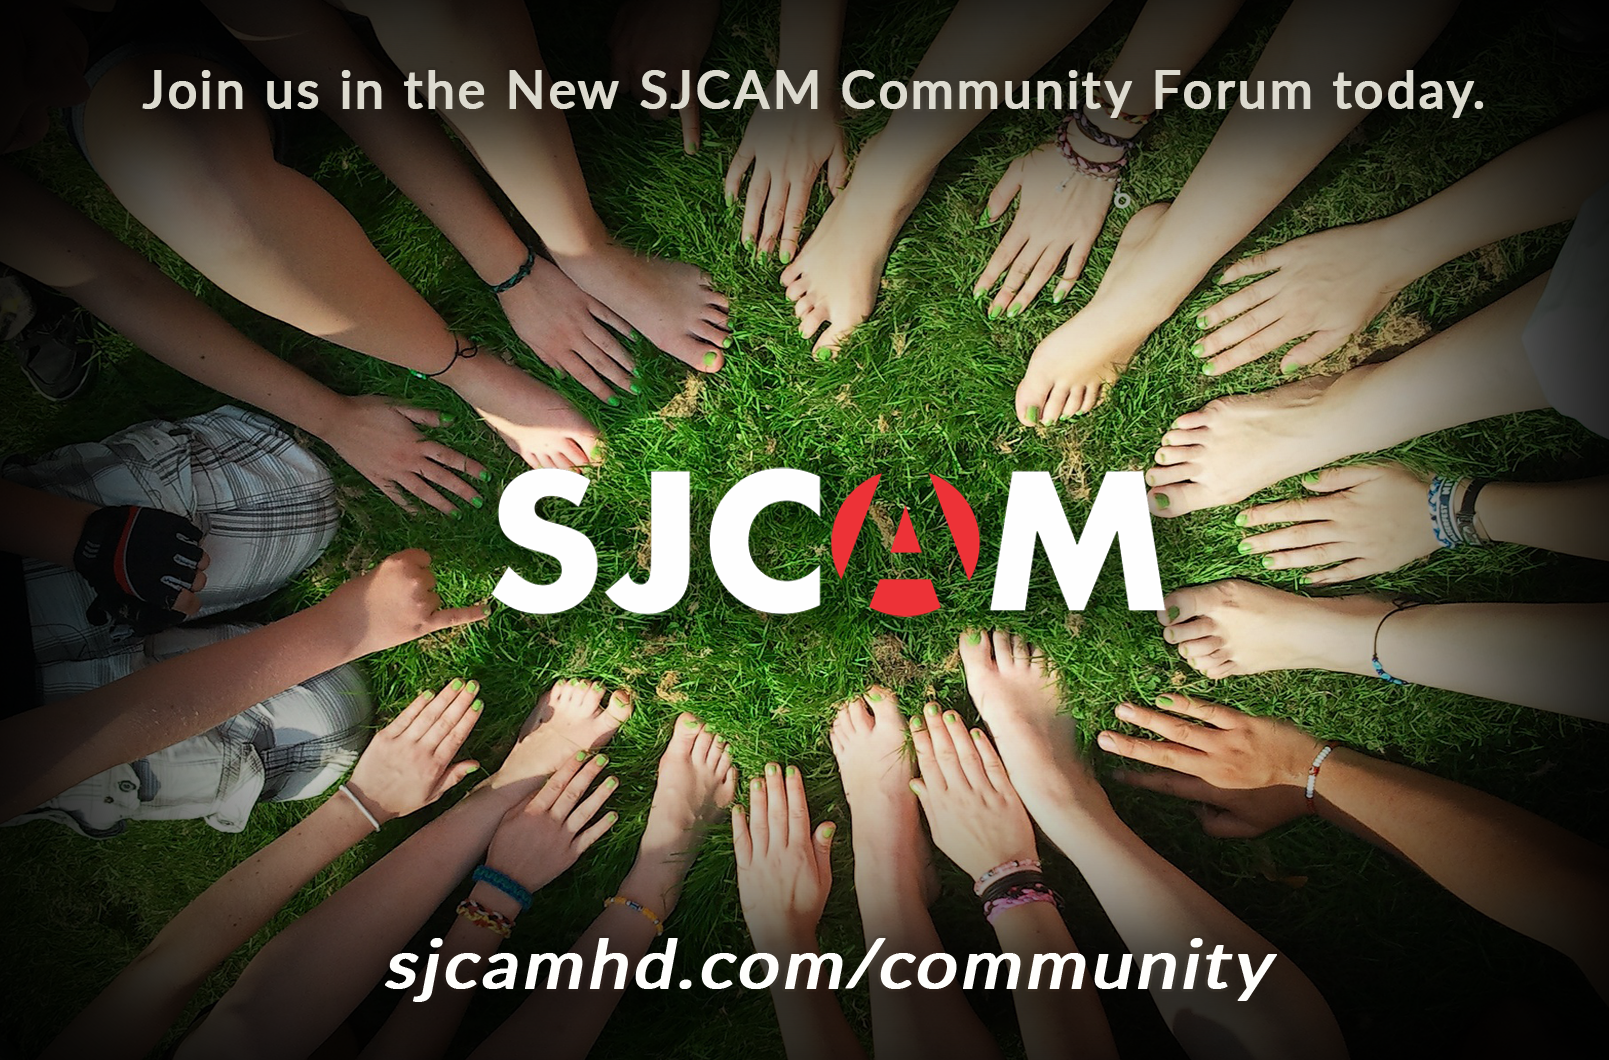 Announcing The New SJCAM Community Forum